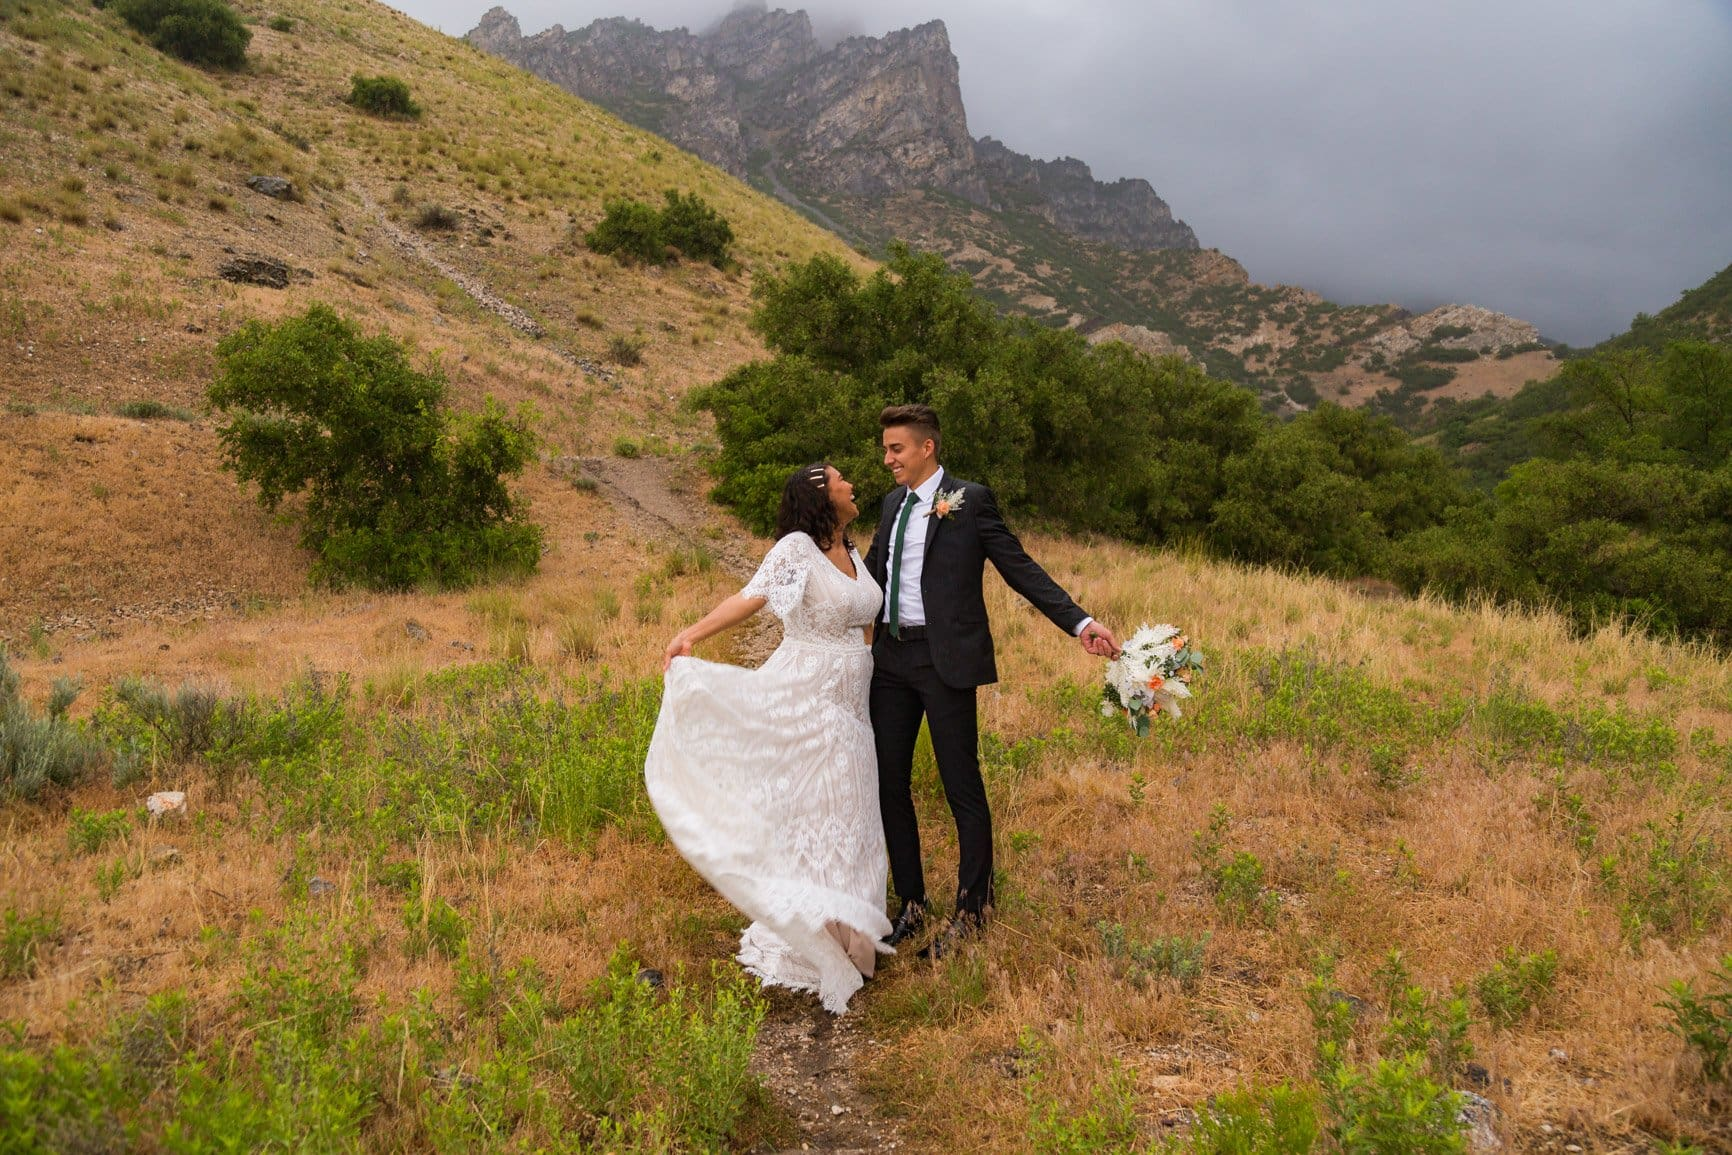 couple enjoys the rain during their vow renewal by embracing the rain in provo canyon